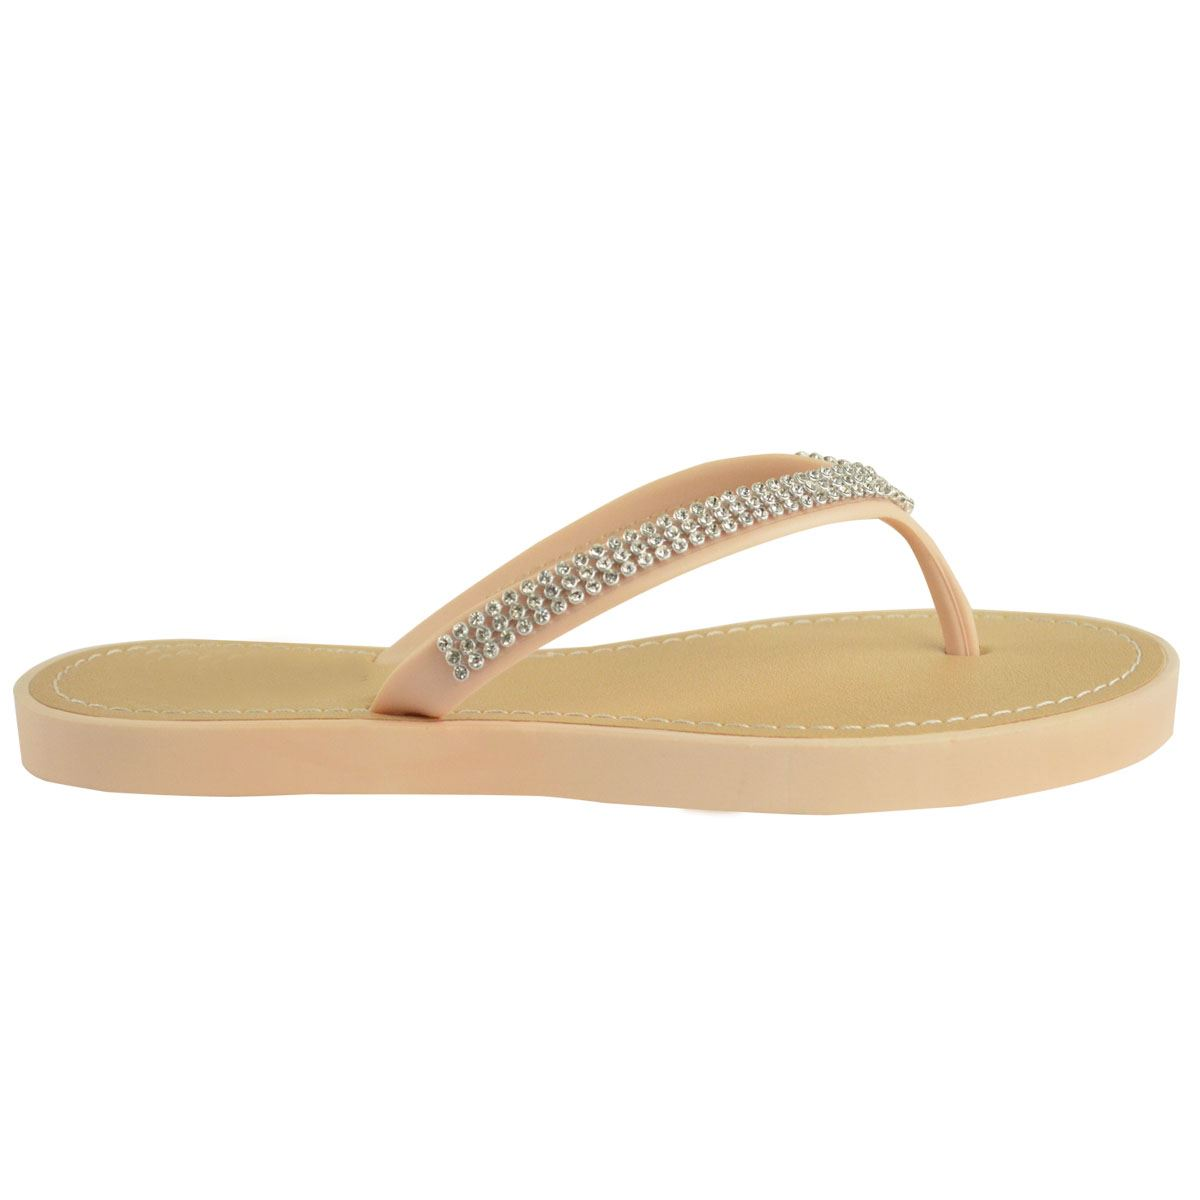 NEW-JELLY-SANDALS-WOMENS-LADIES-DIAMANTE-SUMMER-HOLIDAY-COMFORTS-FLIP-FLOPS-SIZE thumbnail 57